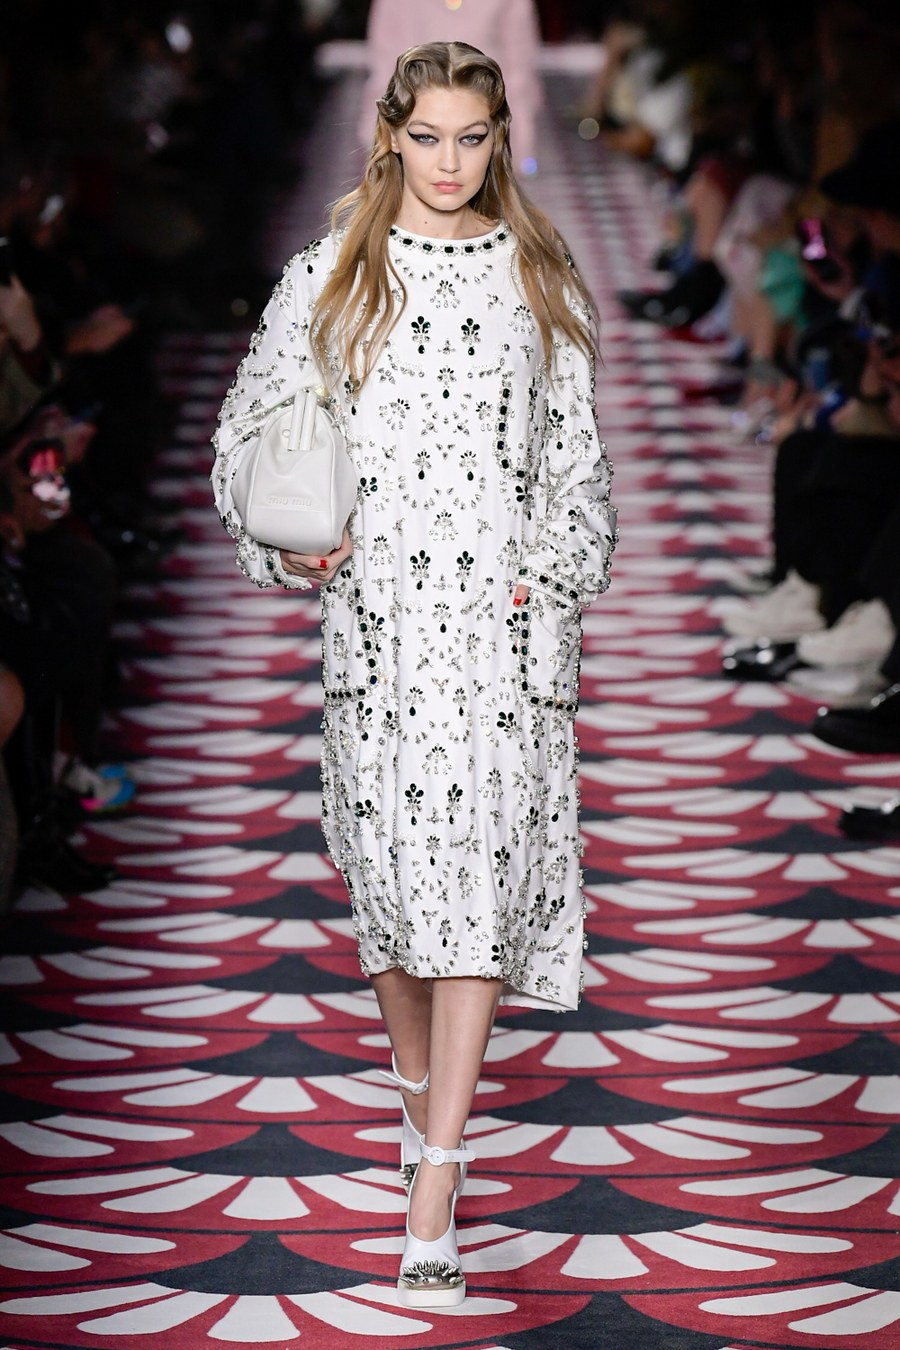 Gigi Hadid walking for Miu Miu fw20